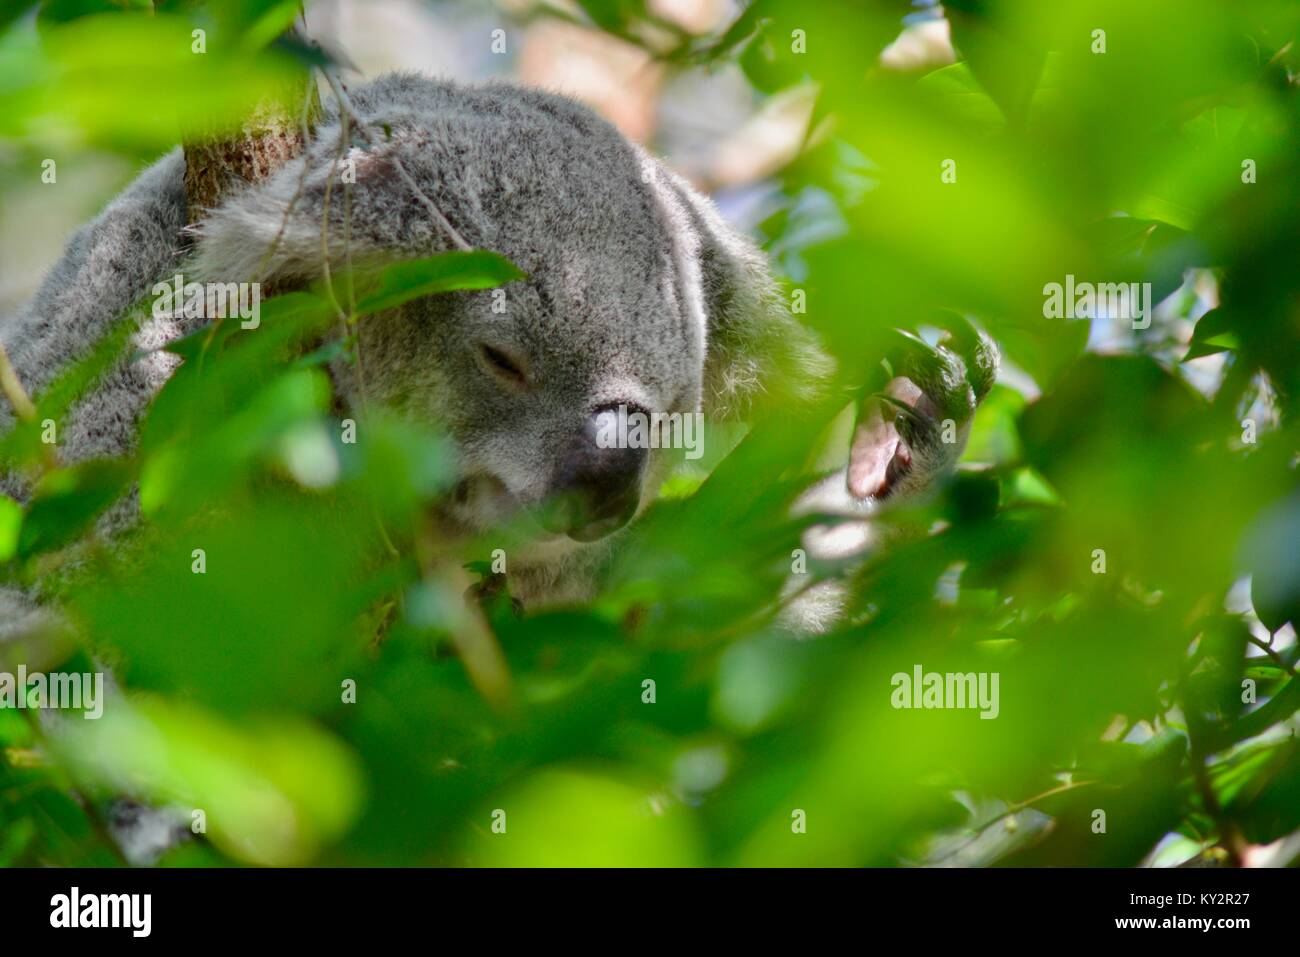 Koala, Phascolarctos cinereus, framed by eucalypt leaves, Australia Zoo, Beerwah, Queensland, Australia - Stock Image